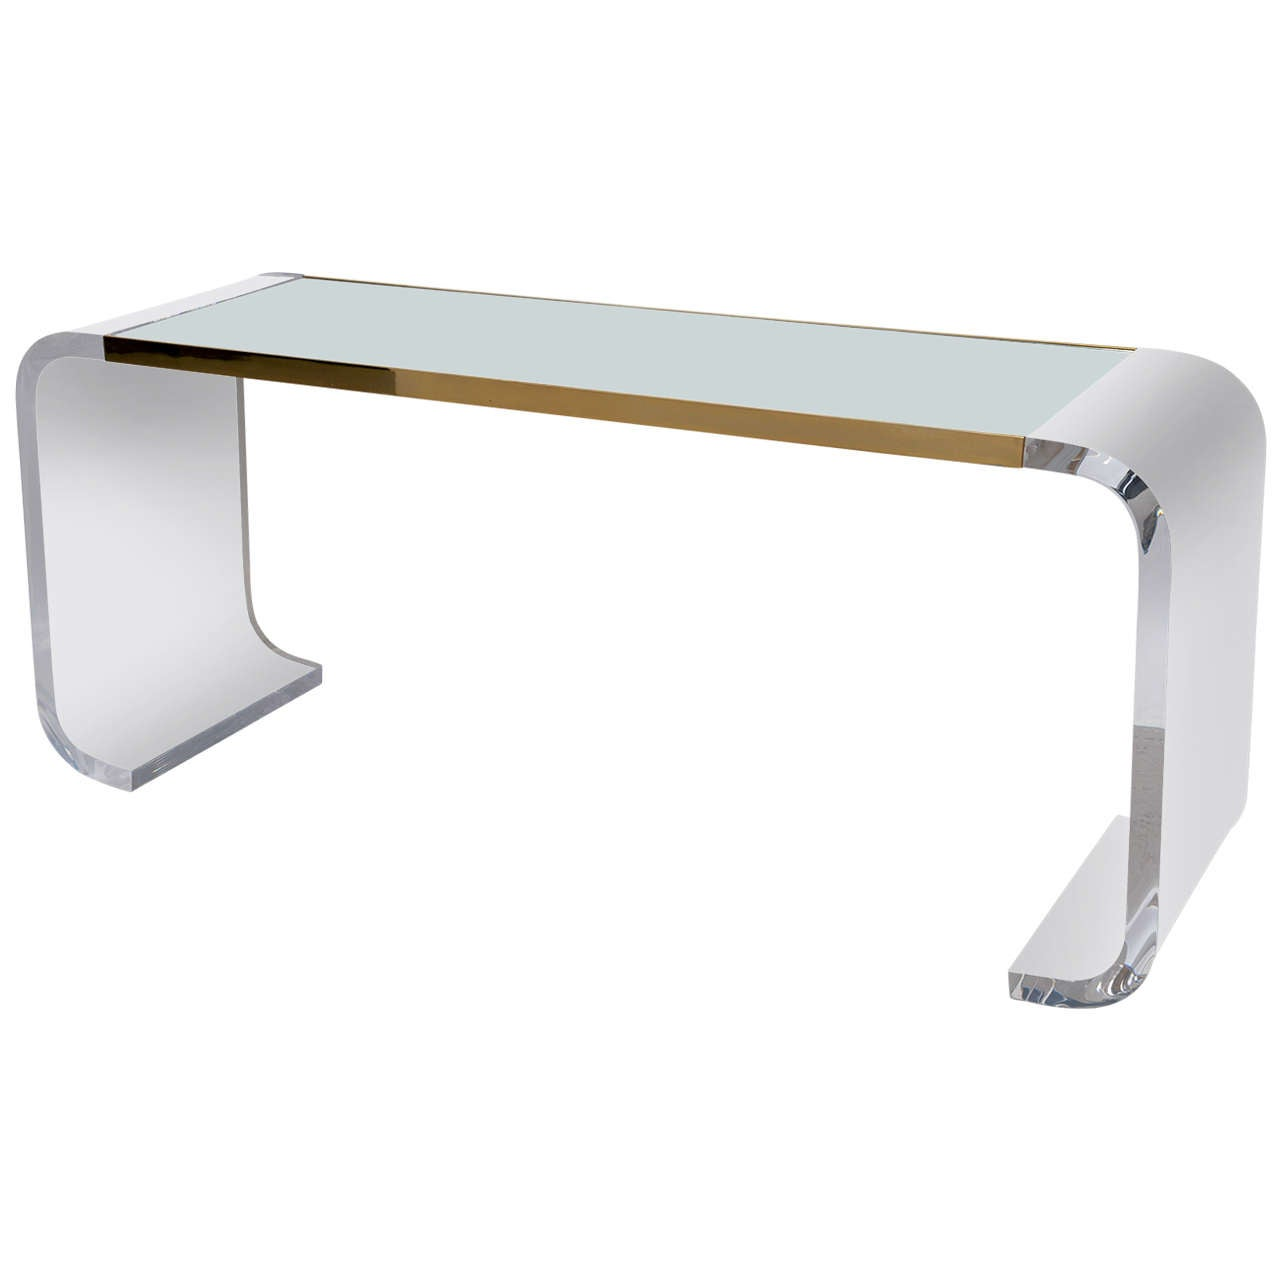 Lucite waterfall console table at 1stdibs for Table console